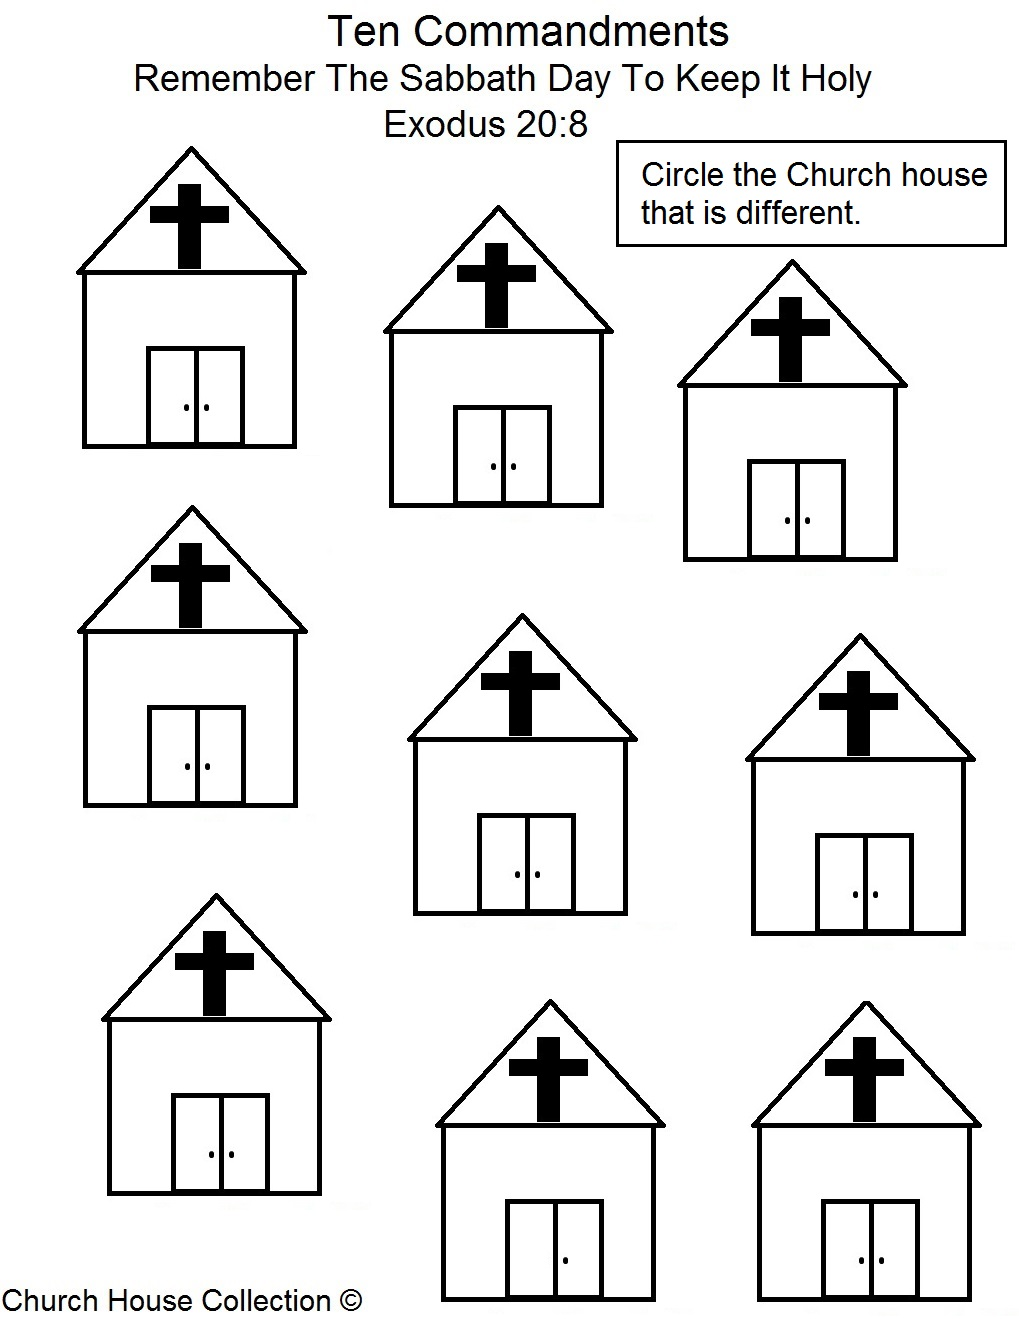 Church House Collection Blog: Remember The Sabbath Day To